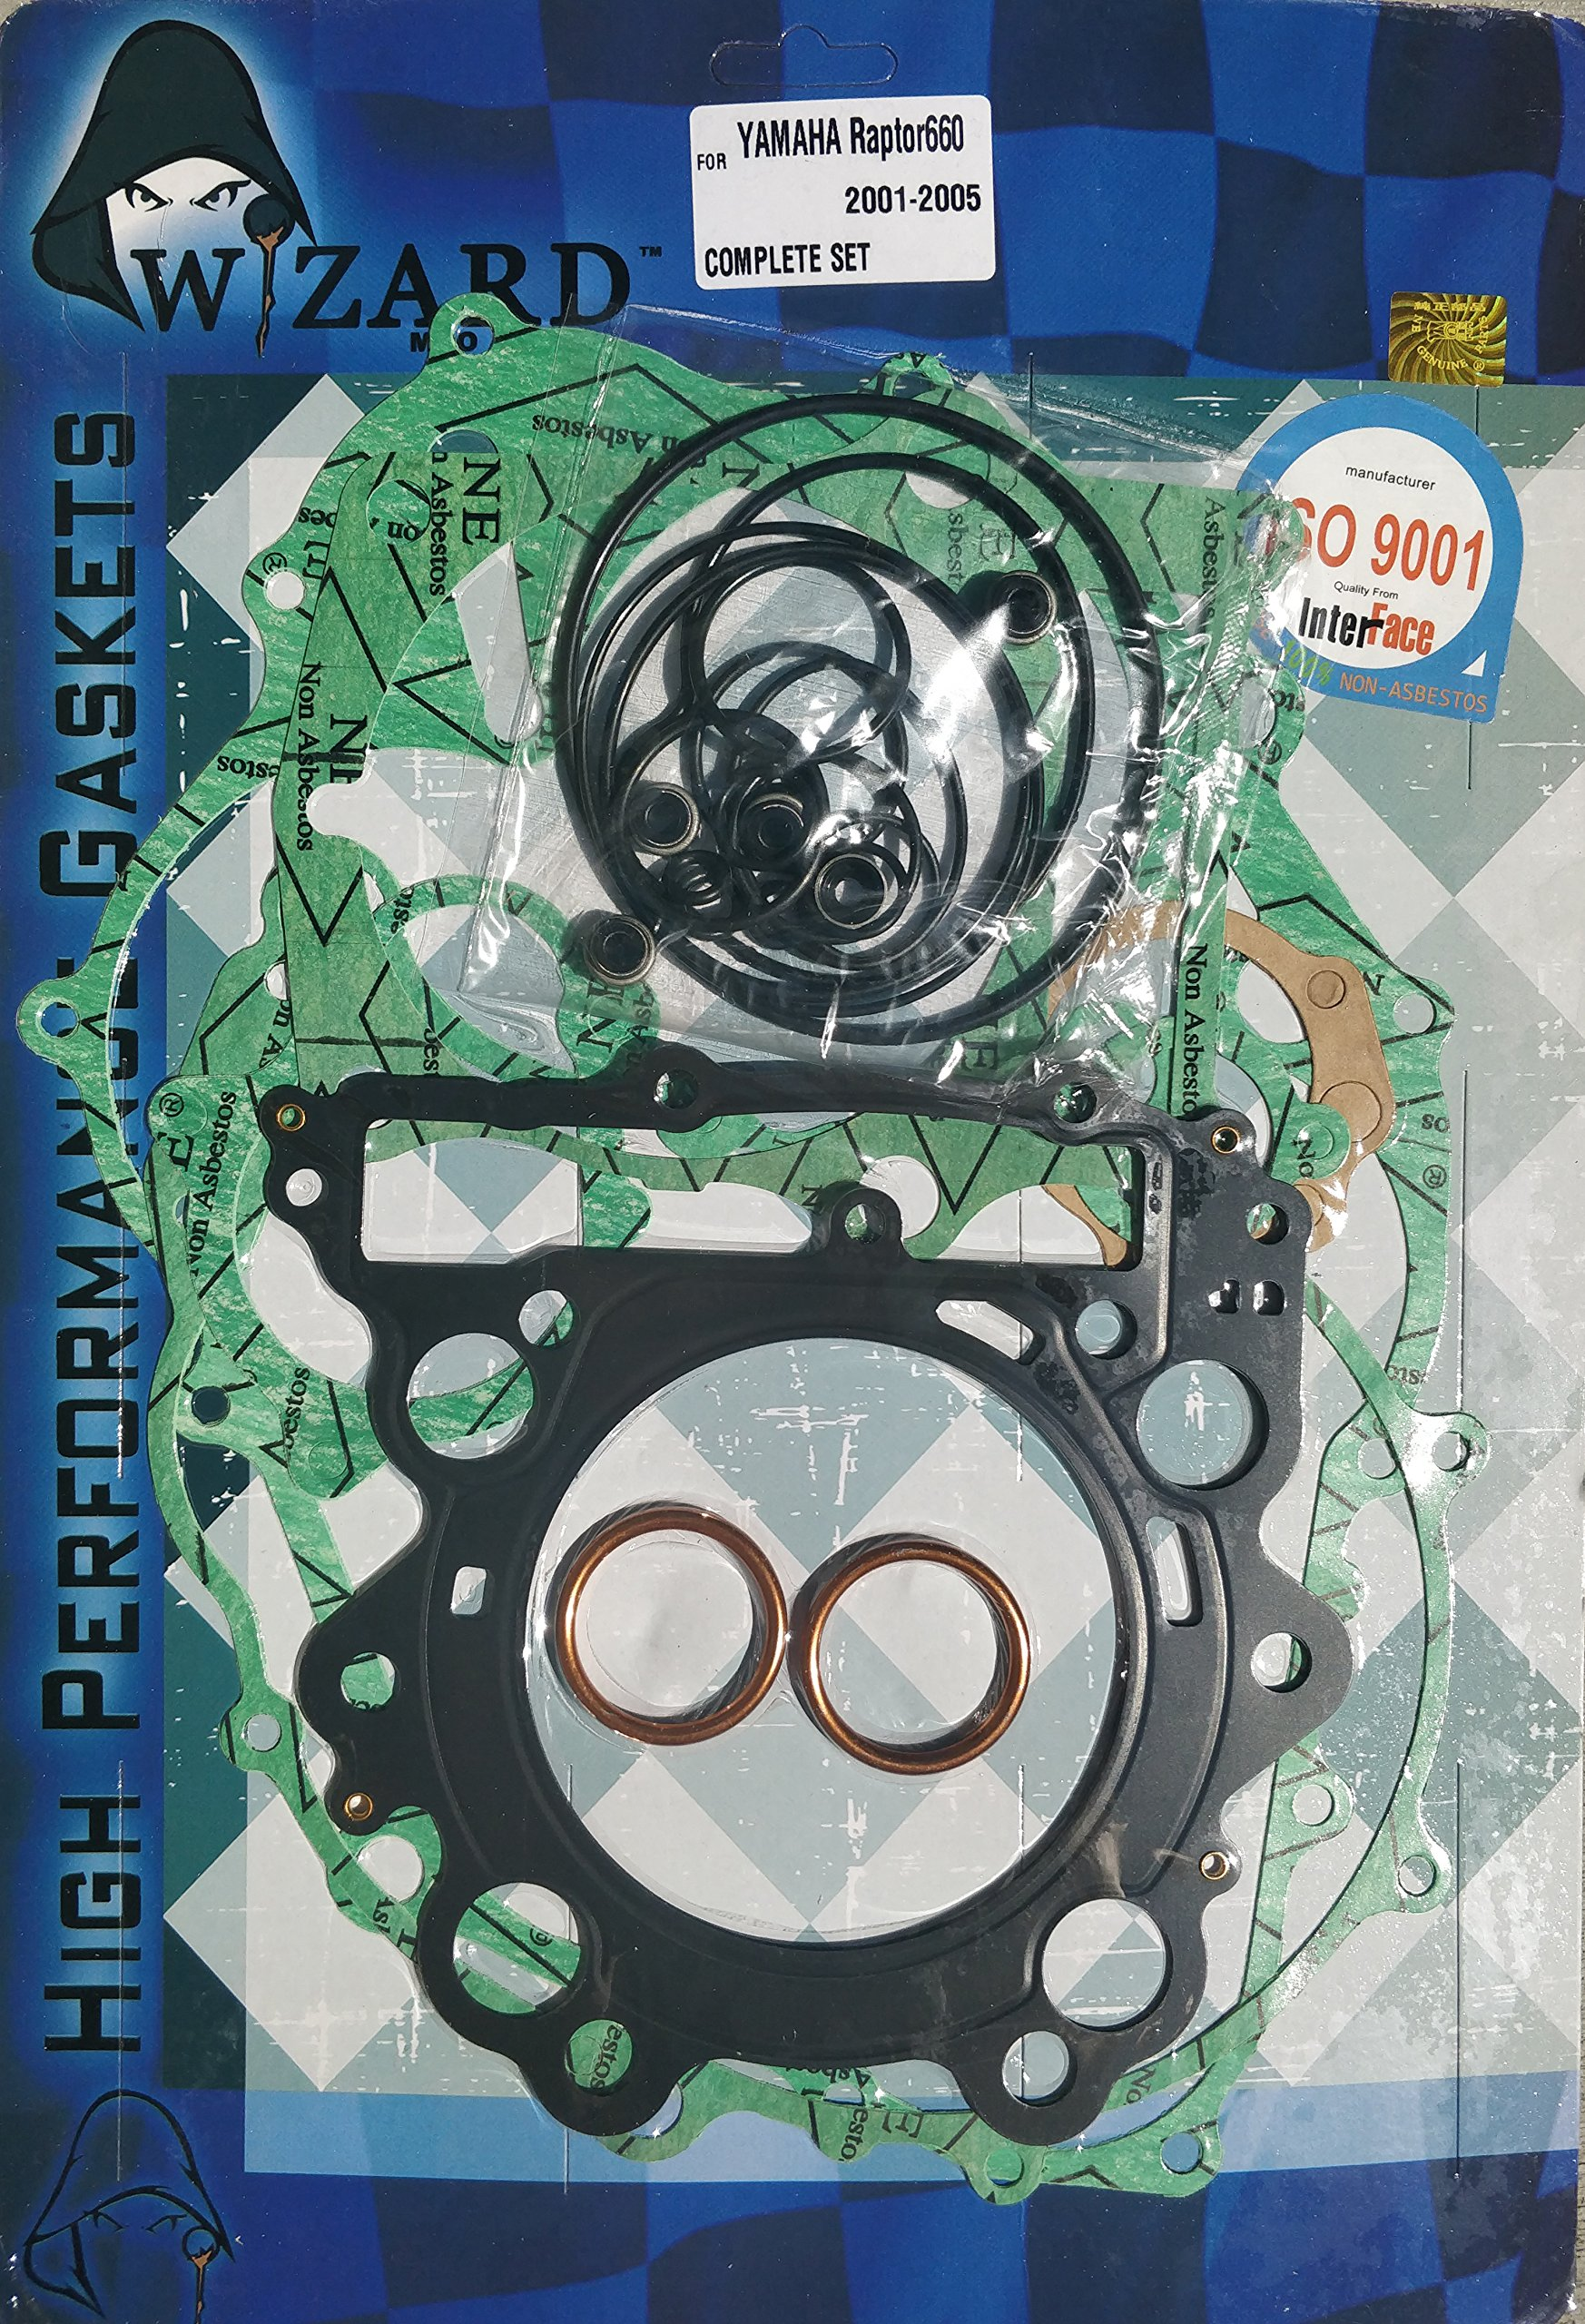 Yamaha Raptor 660 Complete Engine Gasket Set Top and Bottom end Gaskets (2001-2005) by Wizard Moto